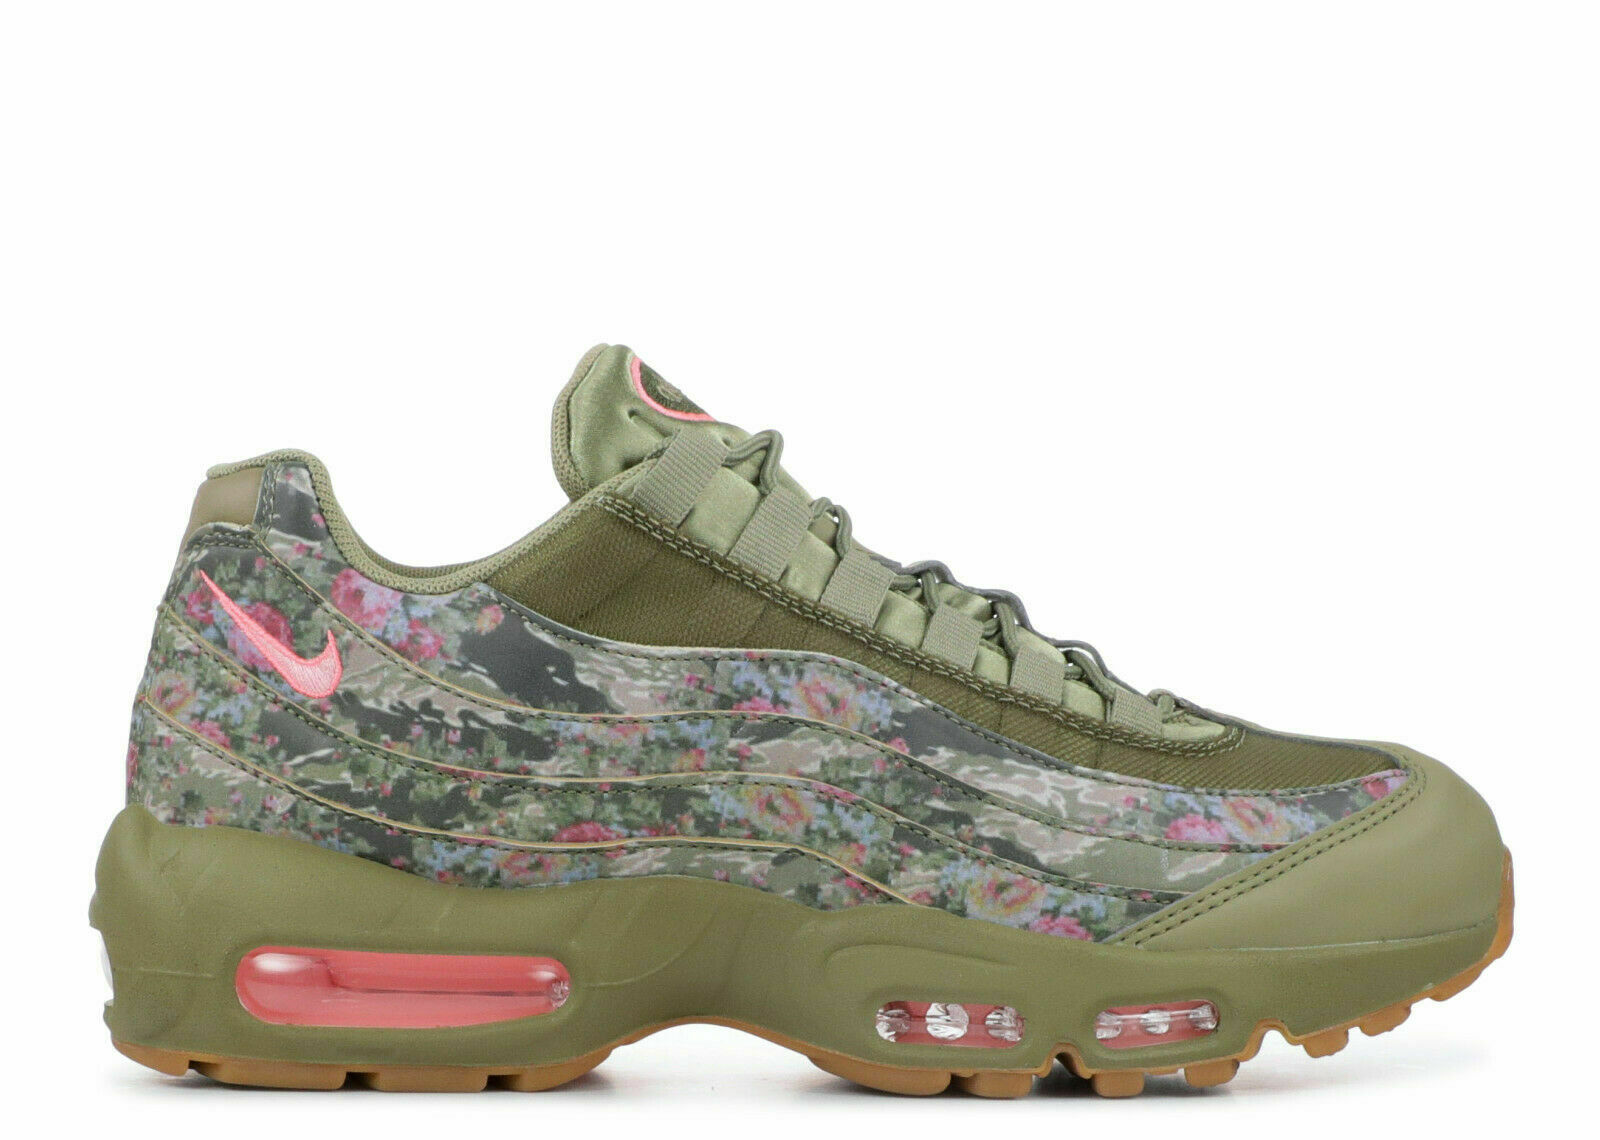 NIKE WOMEN'S AIR MAX 95 SHOES neutral olive arctic punch AQ6385 200 MSRP $180